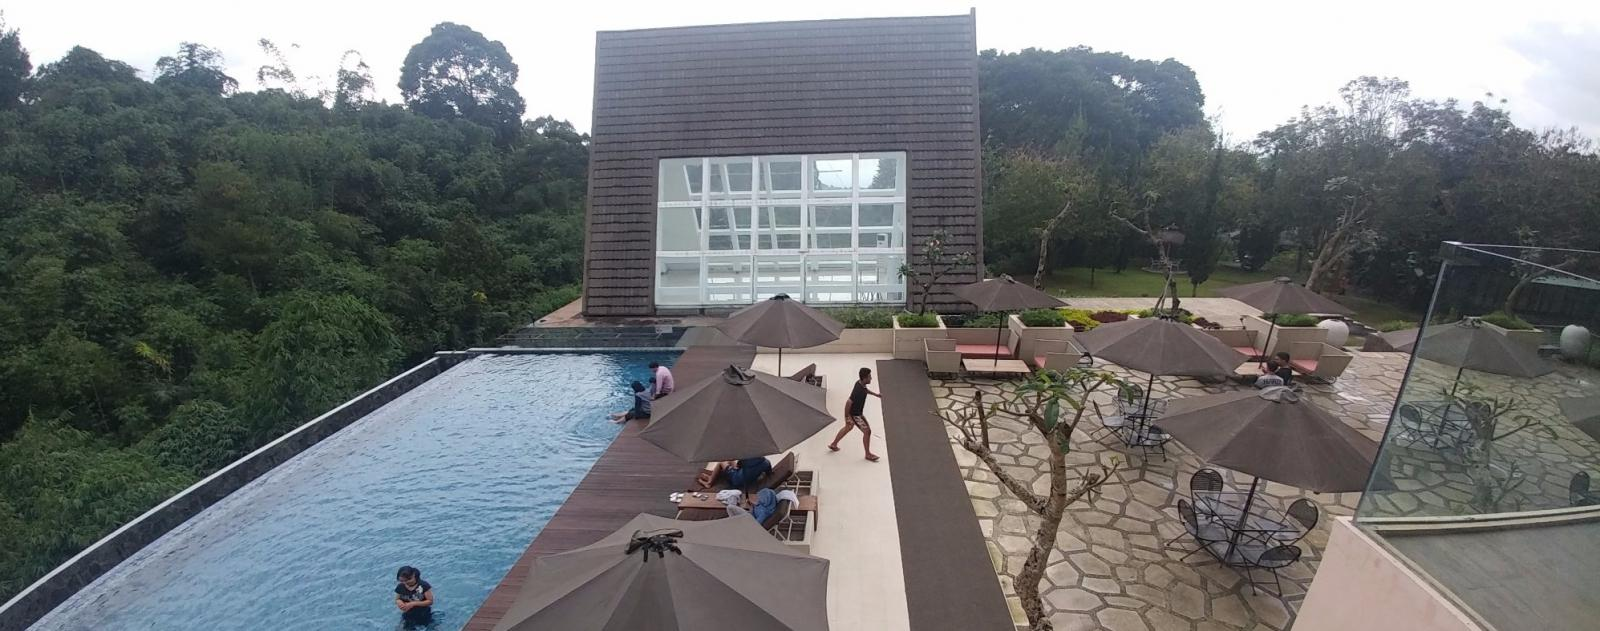 The Green Forest hotel & resort Bandung